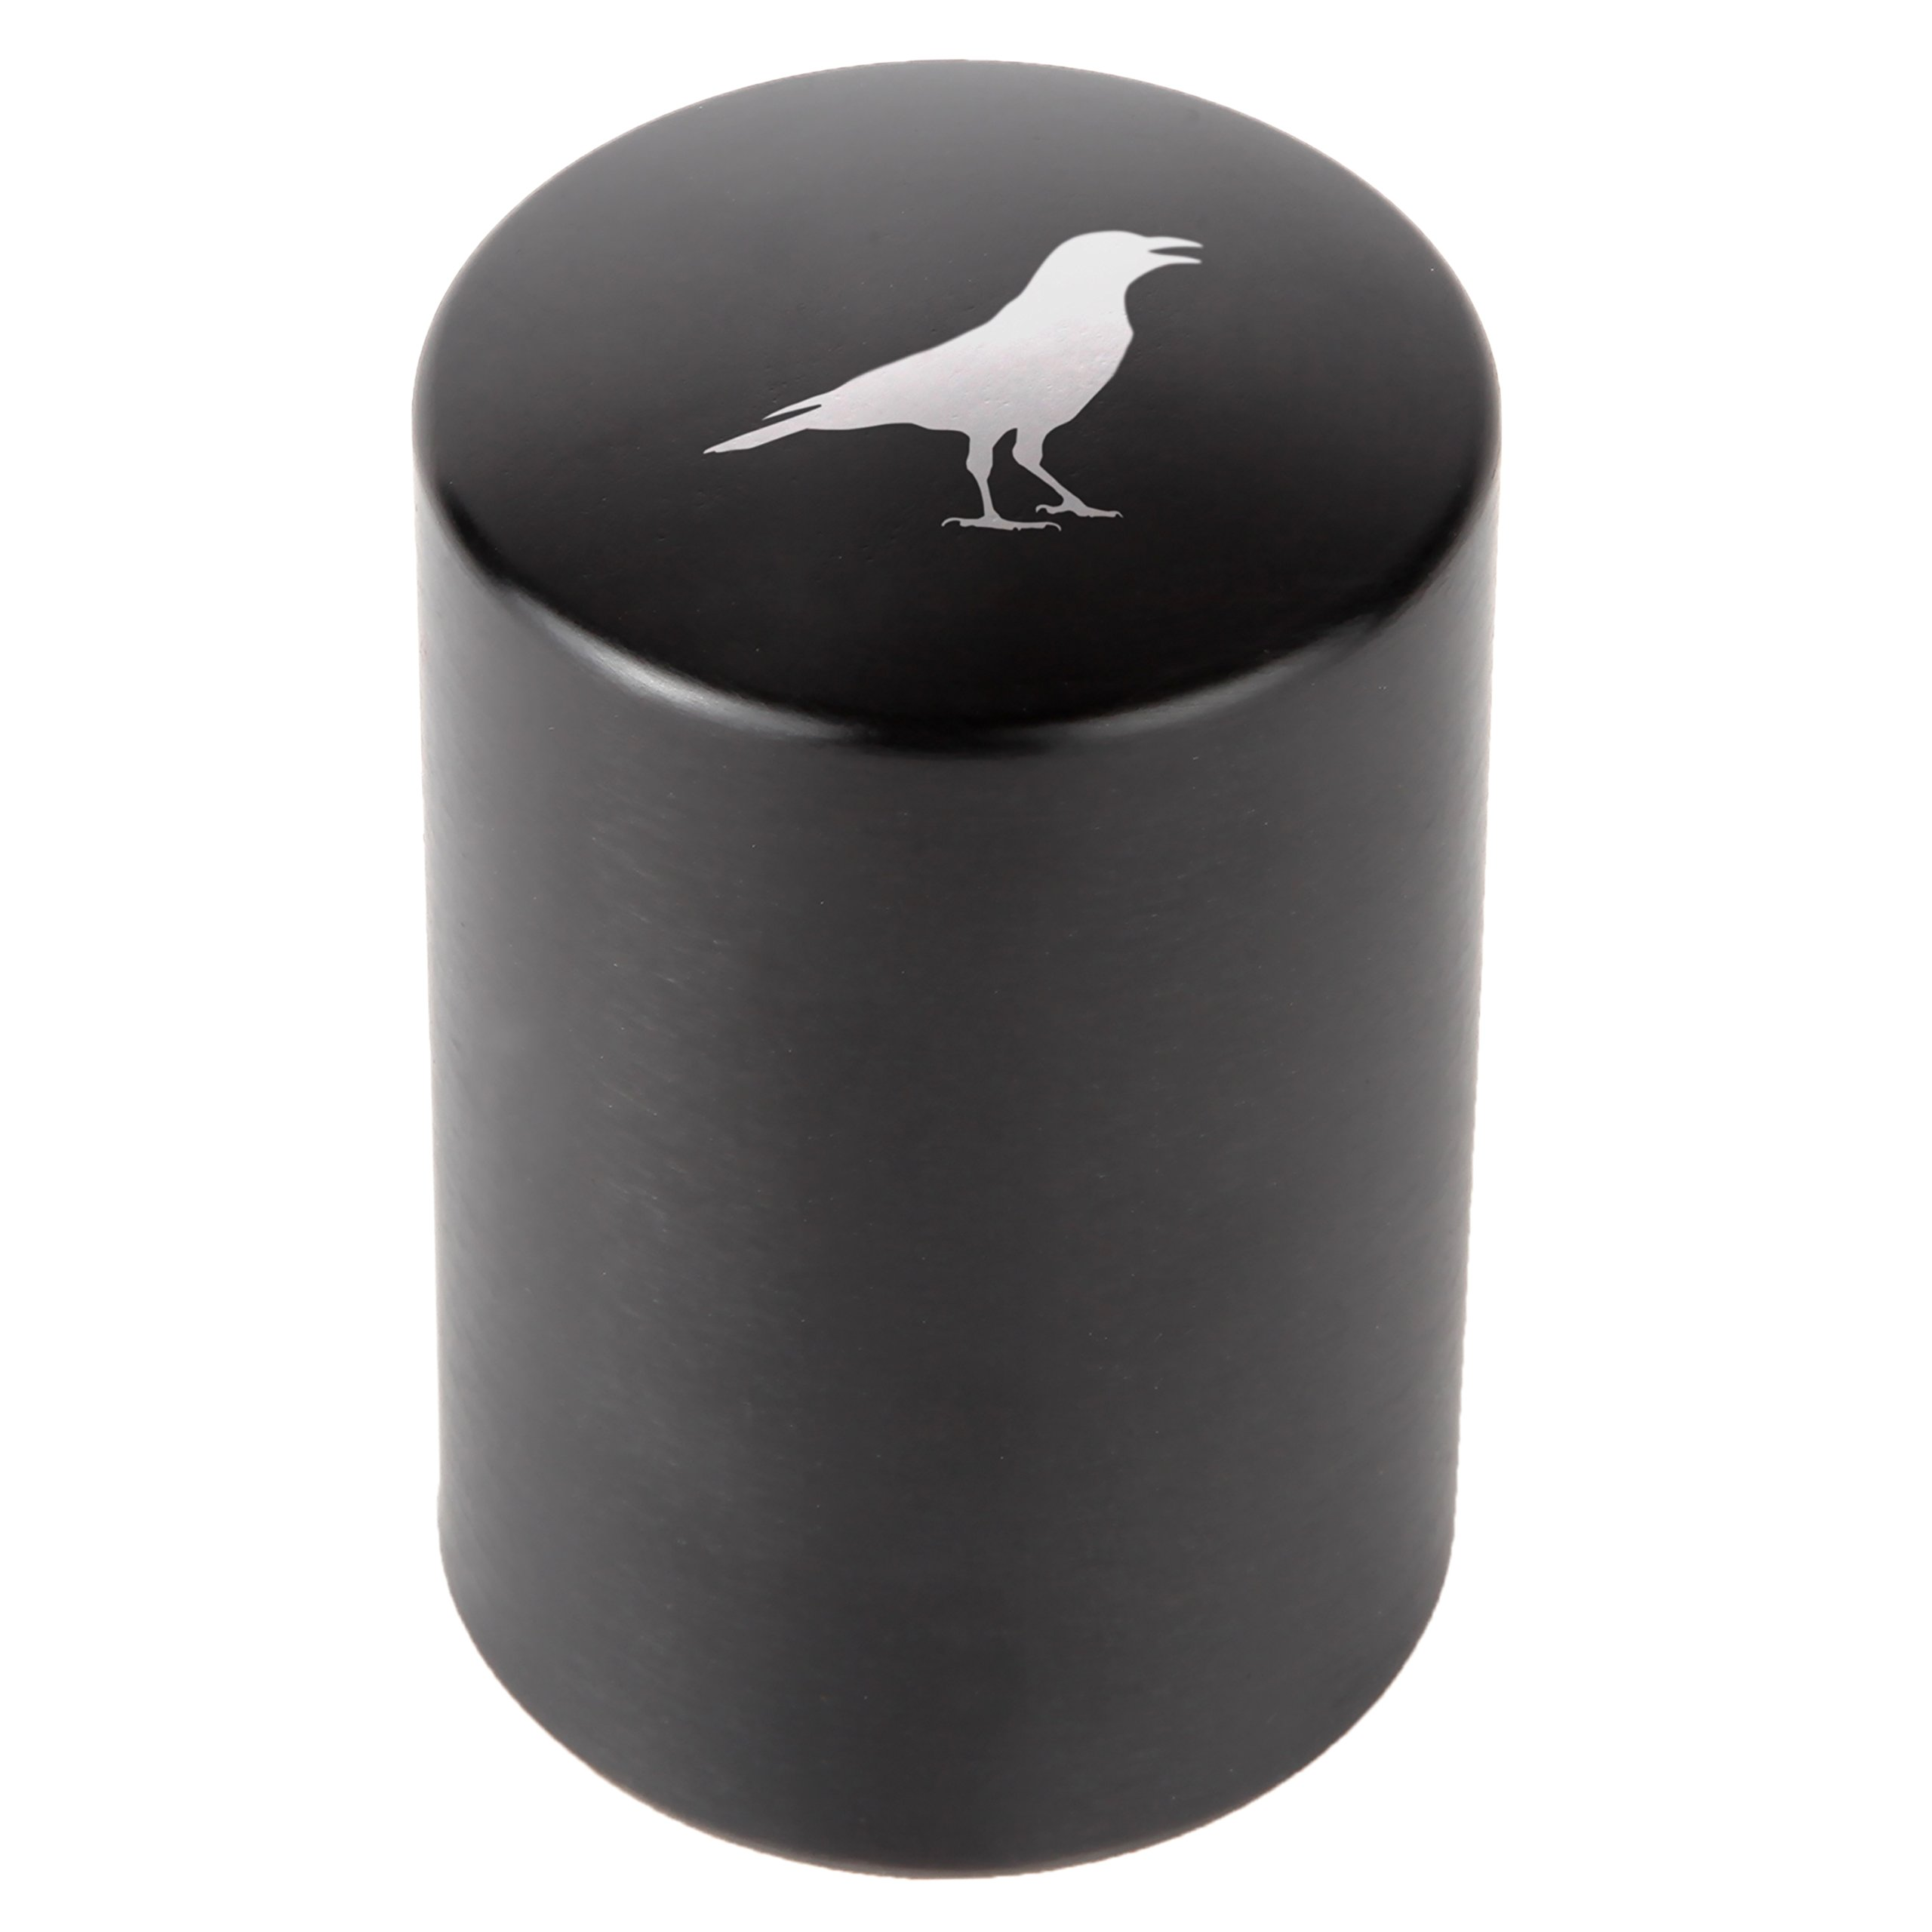 Crow Automatic Bottle Opener - Laser Etched Design - Bottle Opener With Catcher - Fast Bottle Opener For Parties, Events Or Everyday Use by Modern Goods Co